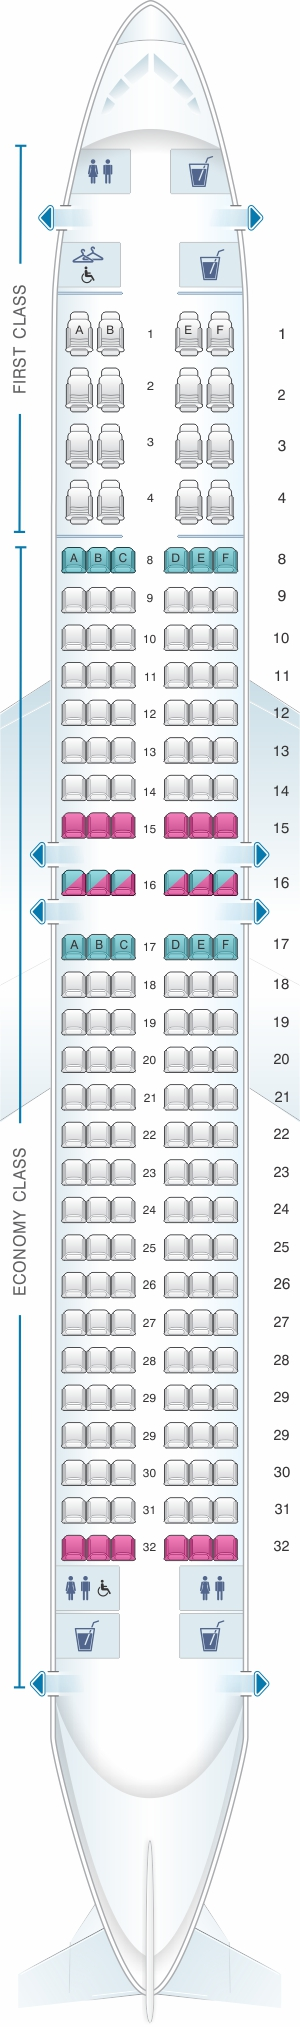 Seat map for American Airlines Boeing B737 800 config.2